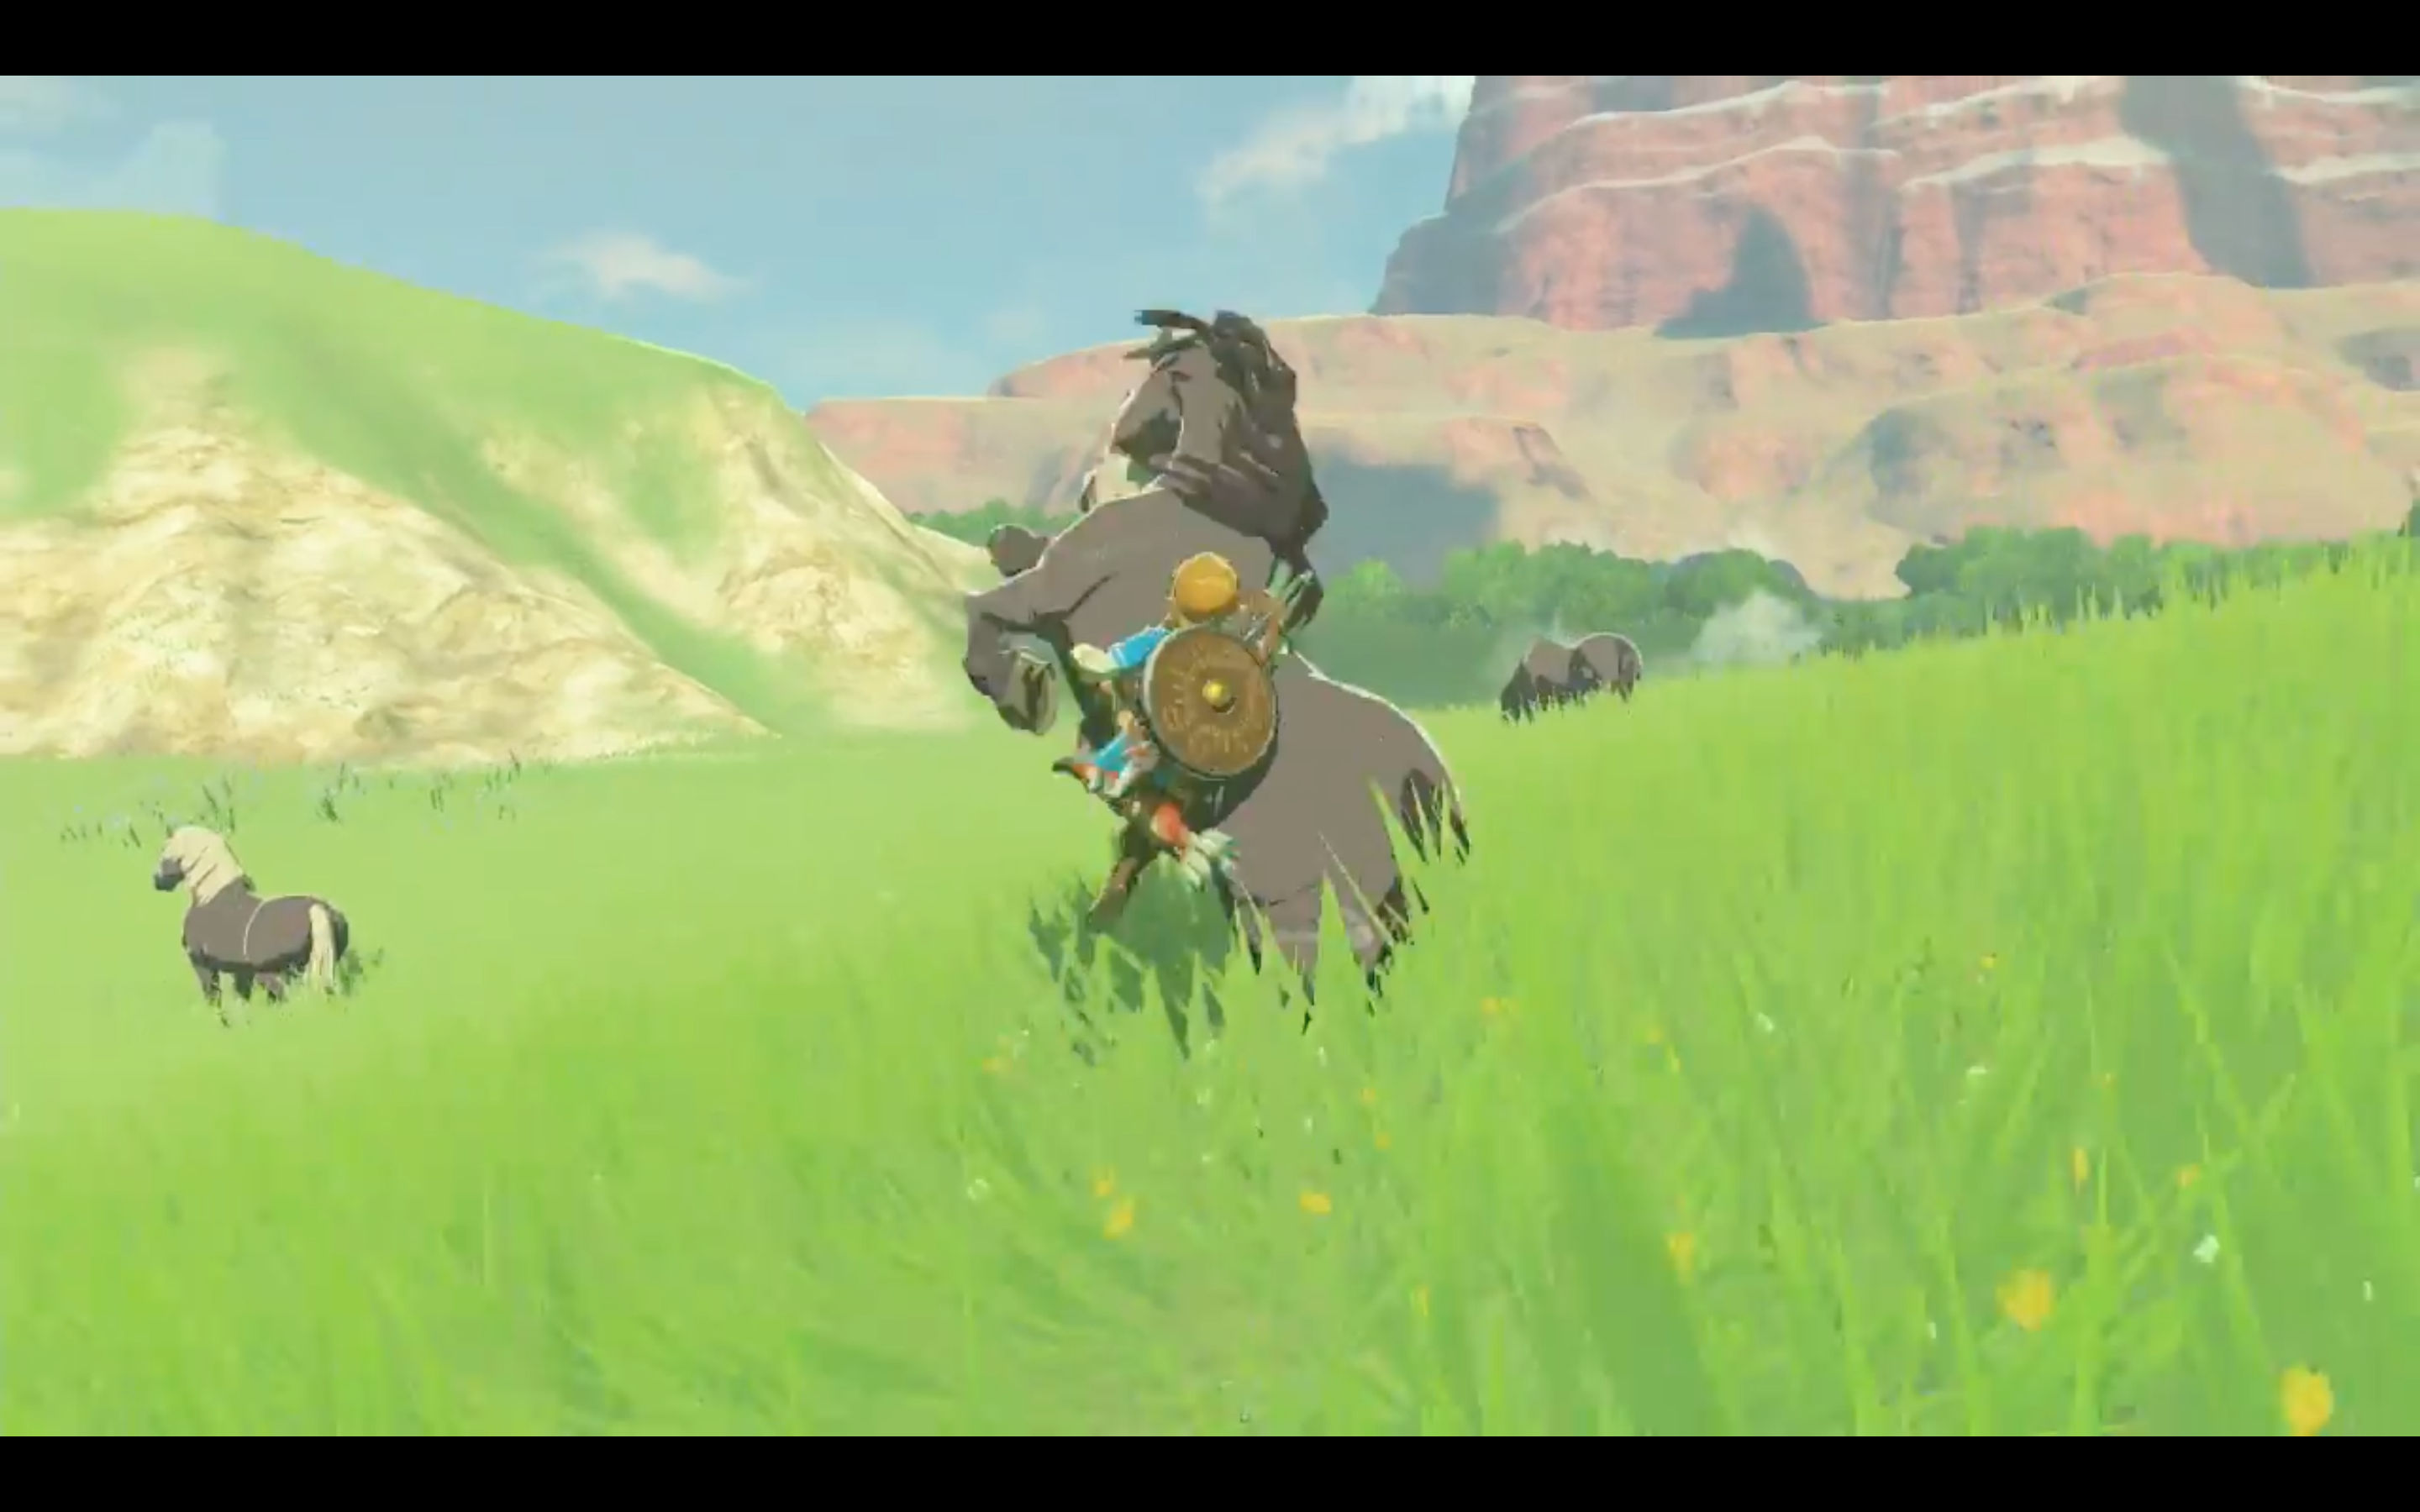 Get that horse, Link. That's your horse, now.